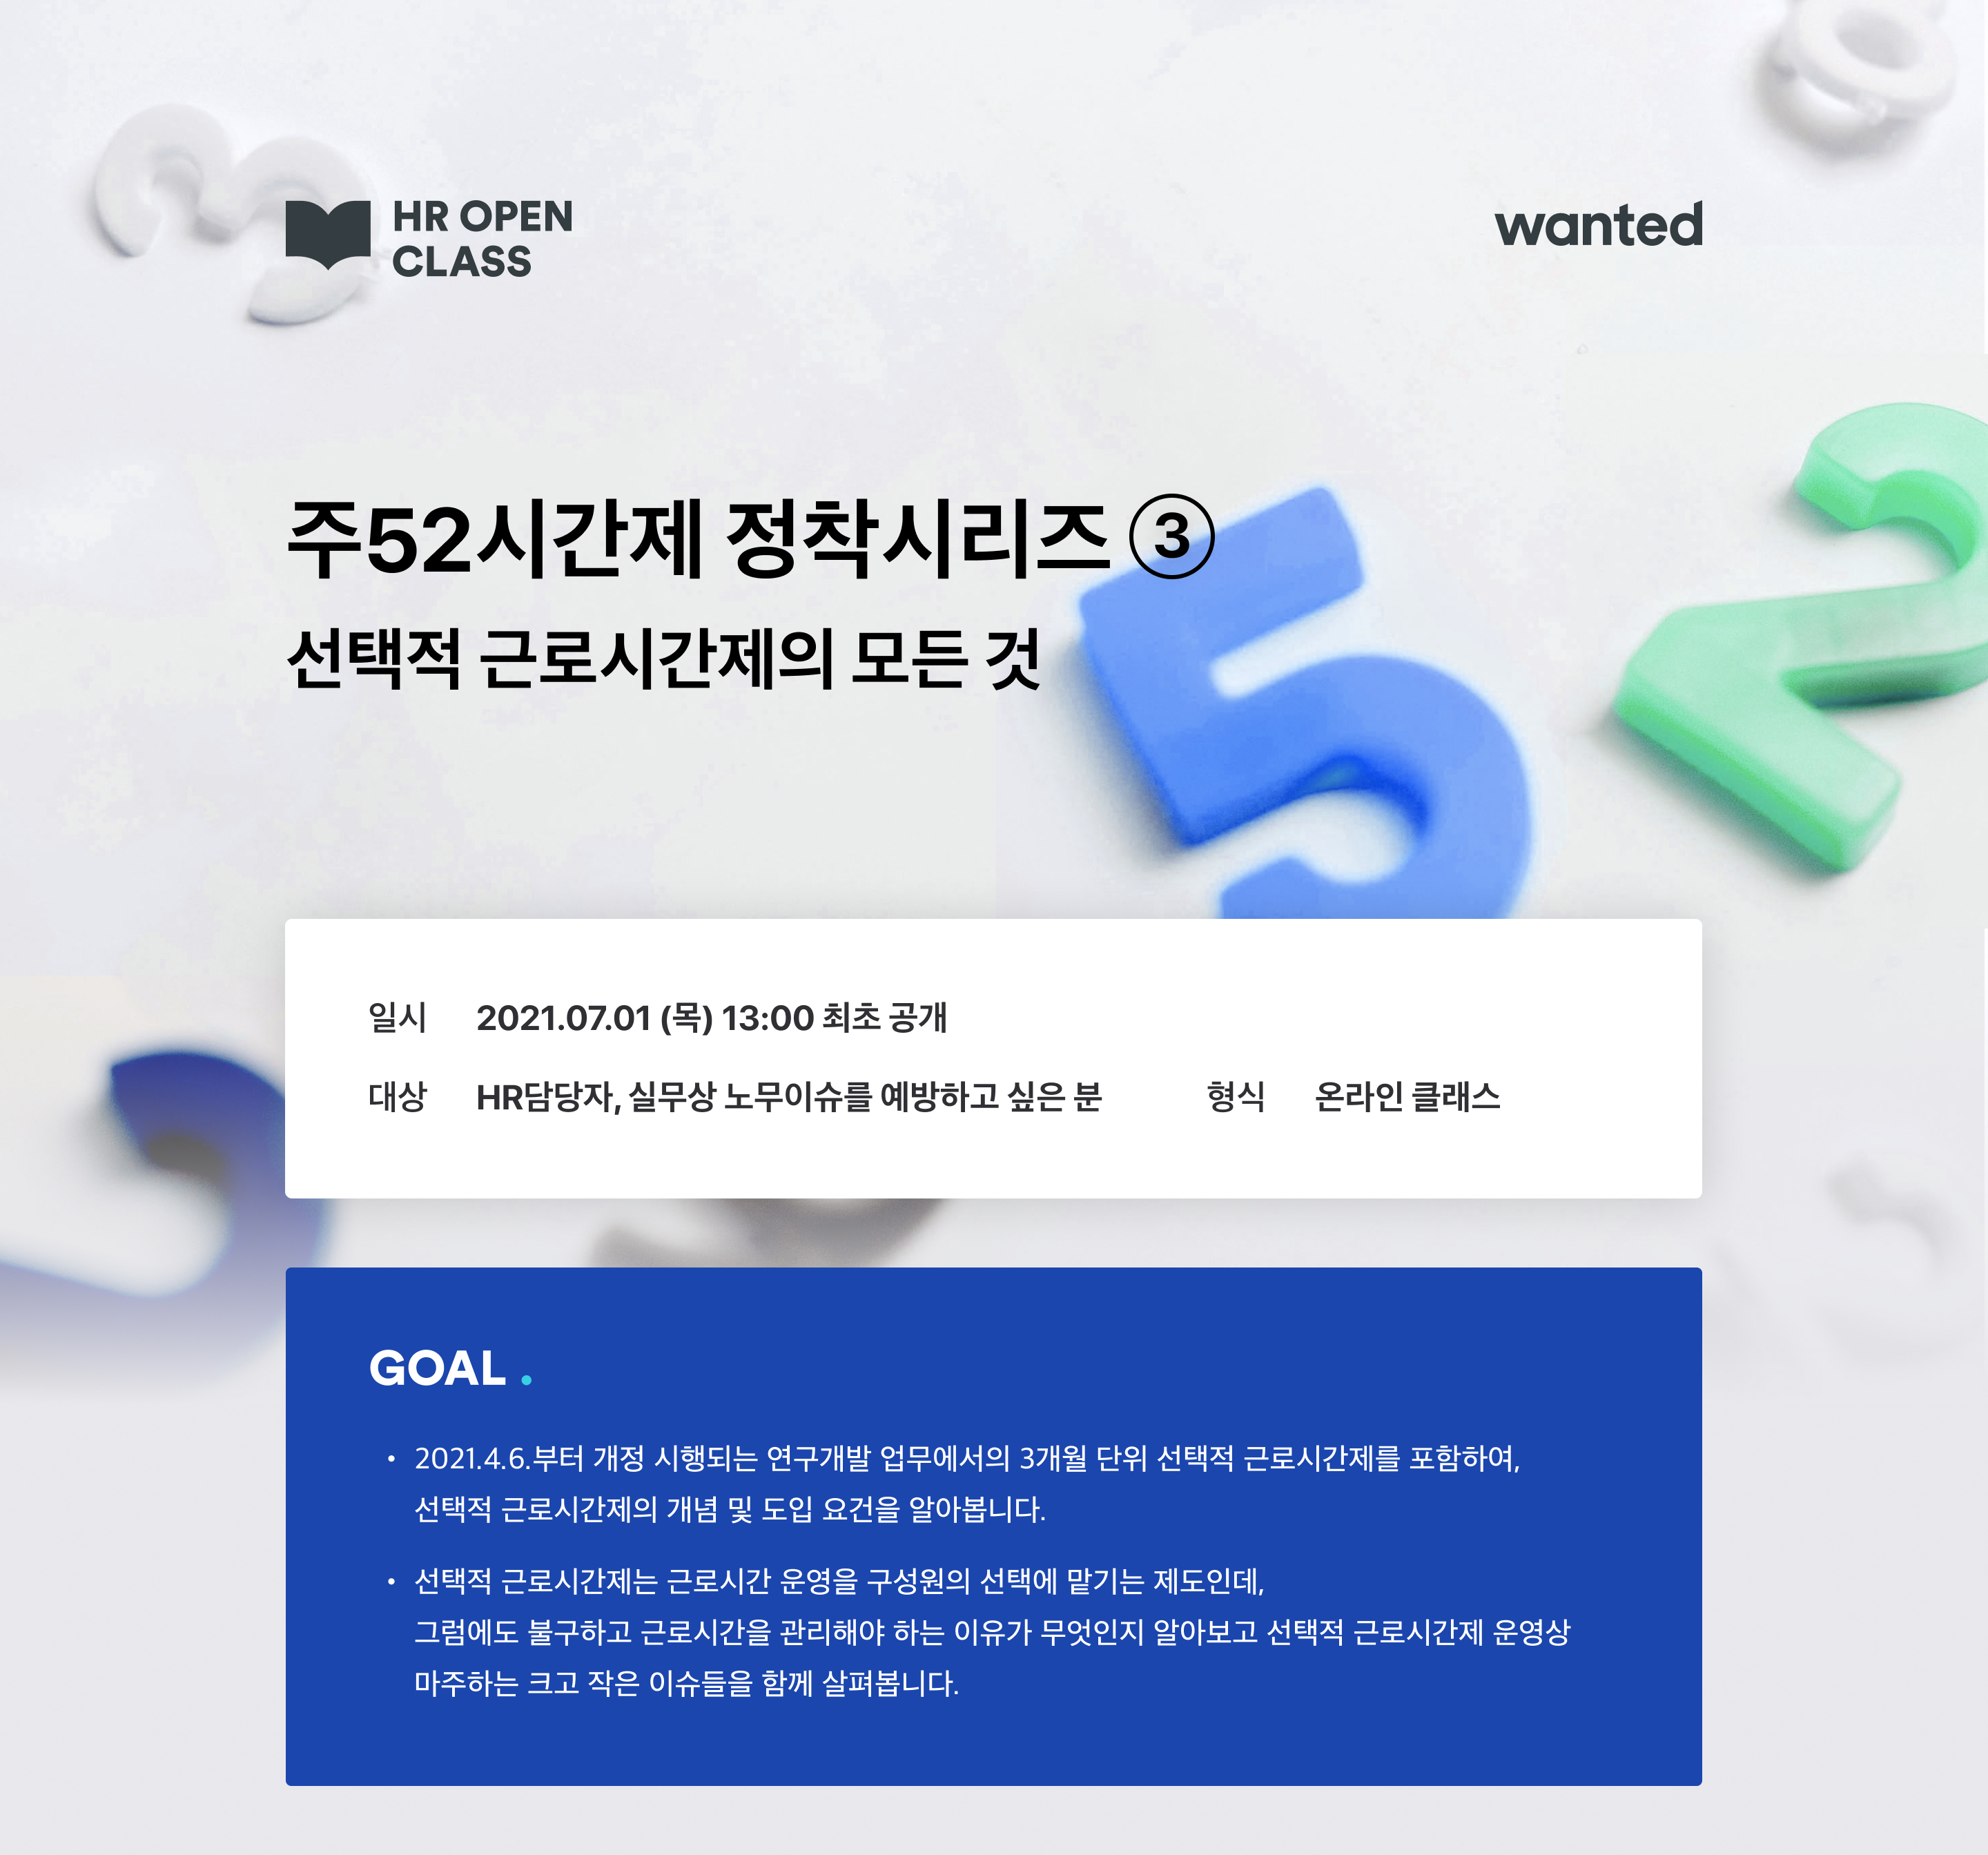 https://static.wanted.co.kr/images/events/1301/c989b6d4.jpg